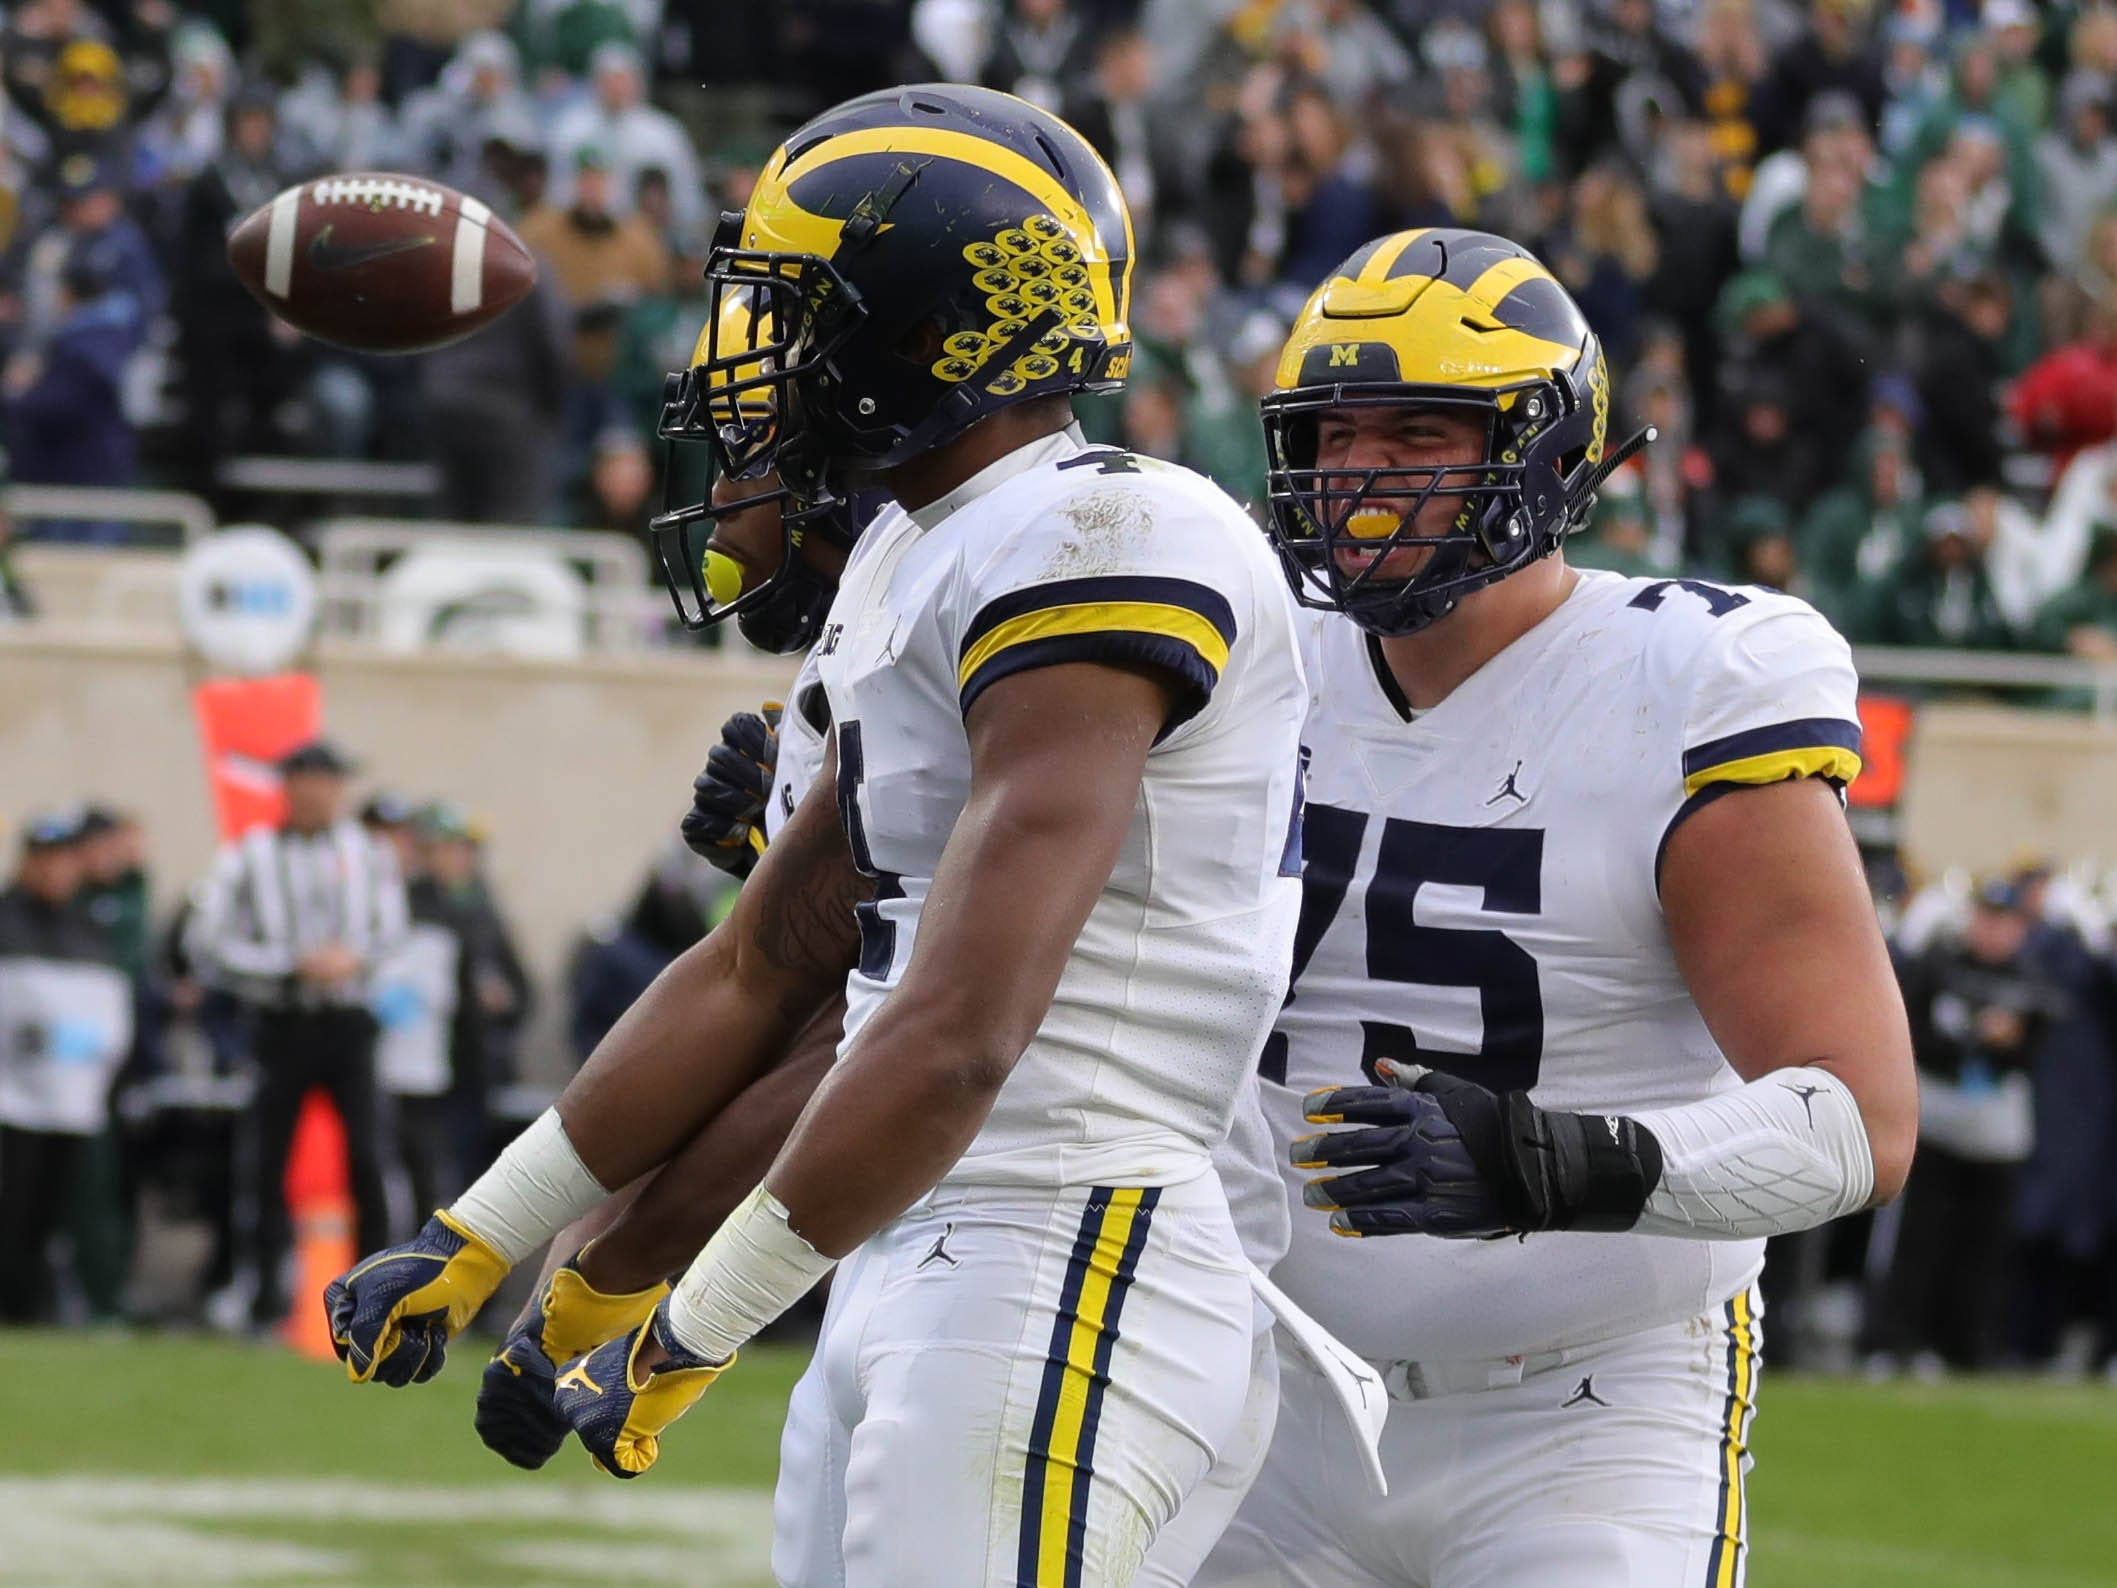 Michigan wide receiver Nico Collins celebrates his touchdown against Michigan State defensive back Tre Person during the first half in Spartan Stadium on Saturday, Oct. 20, 2018.